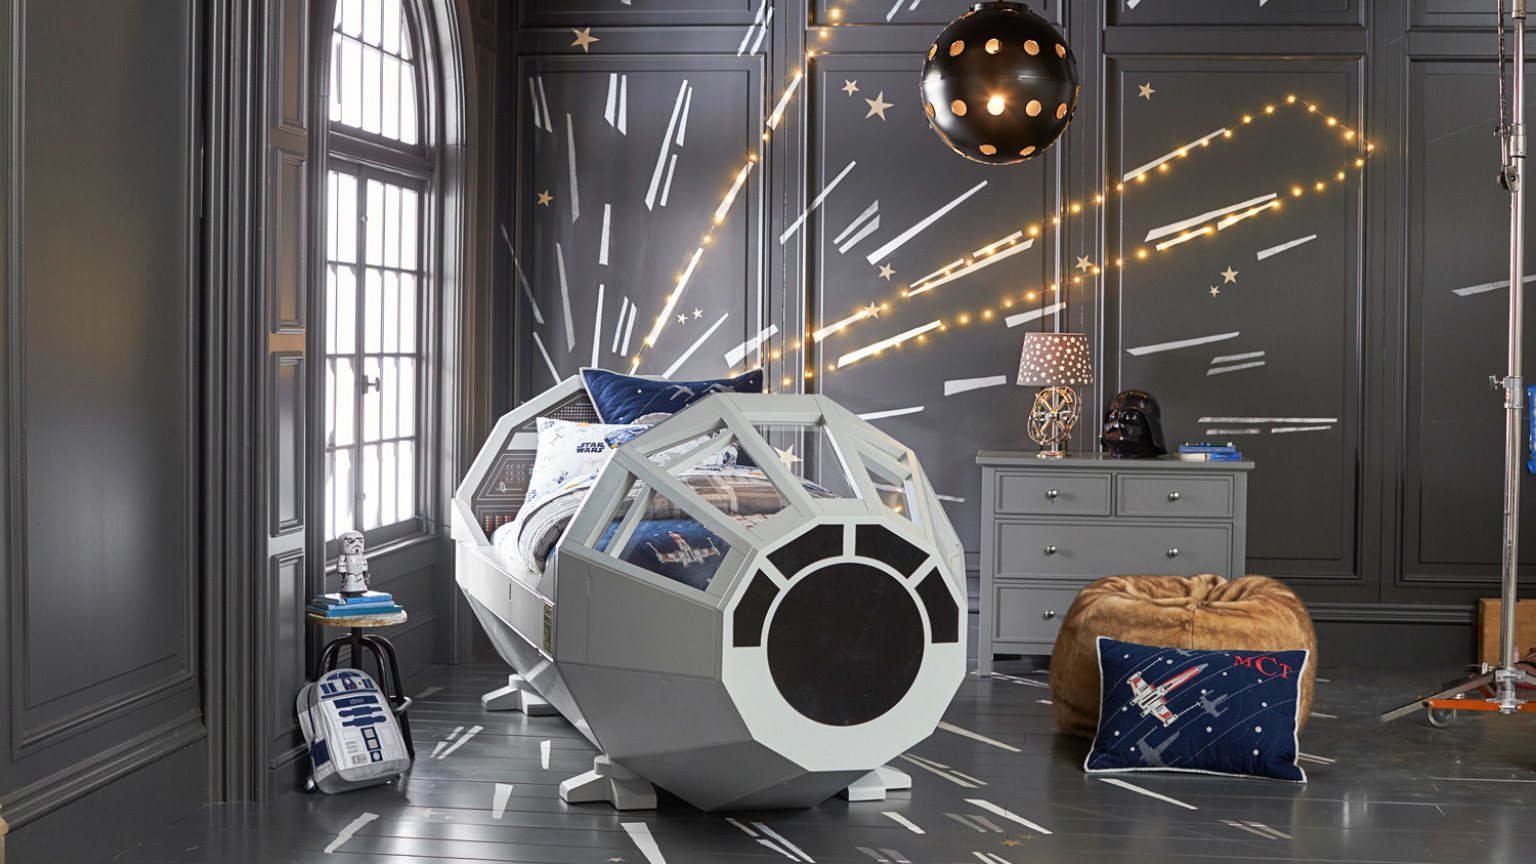 Star Wars Home Decor Takes Off Builder Magazine